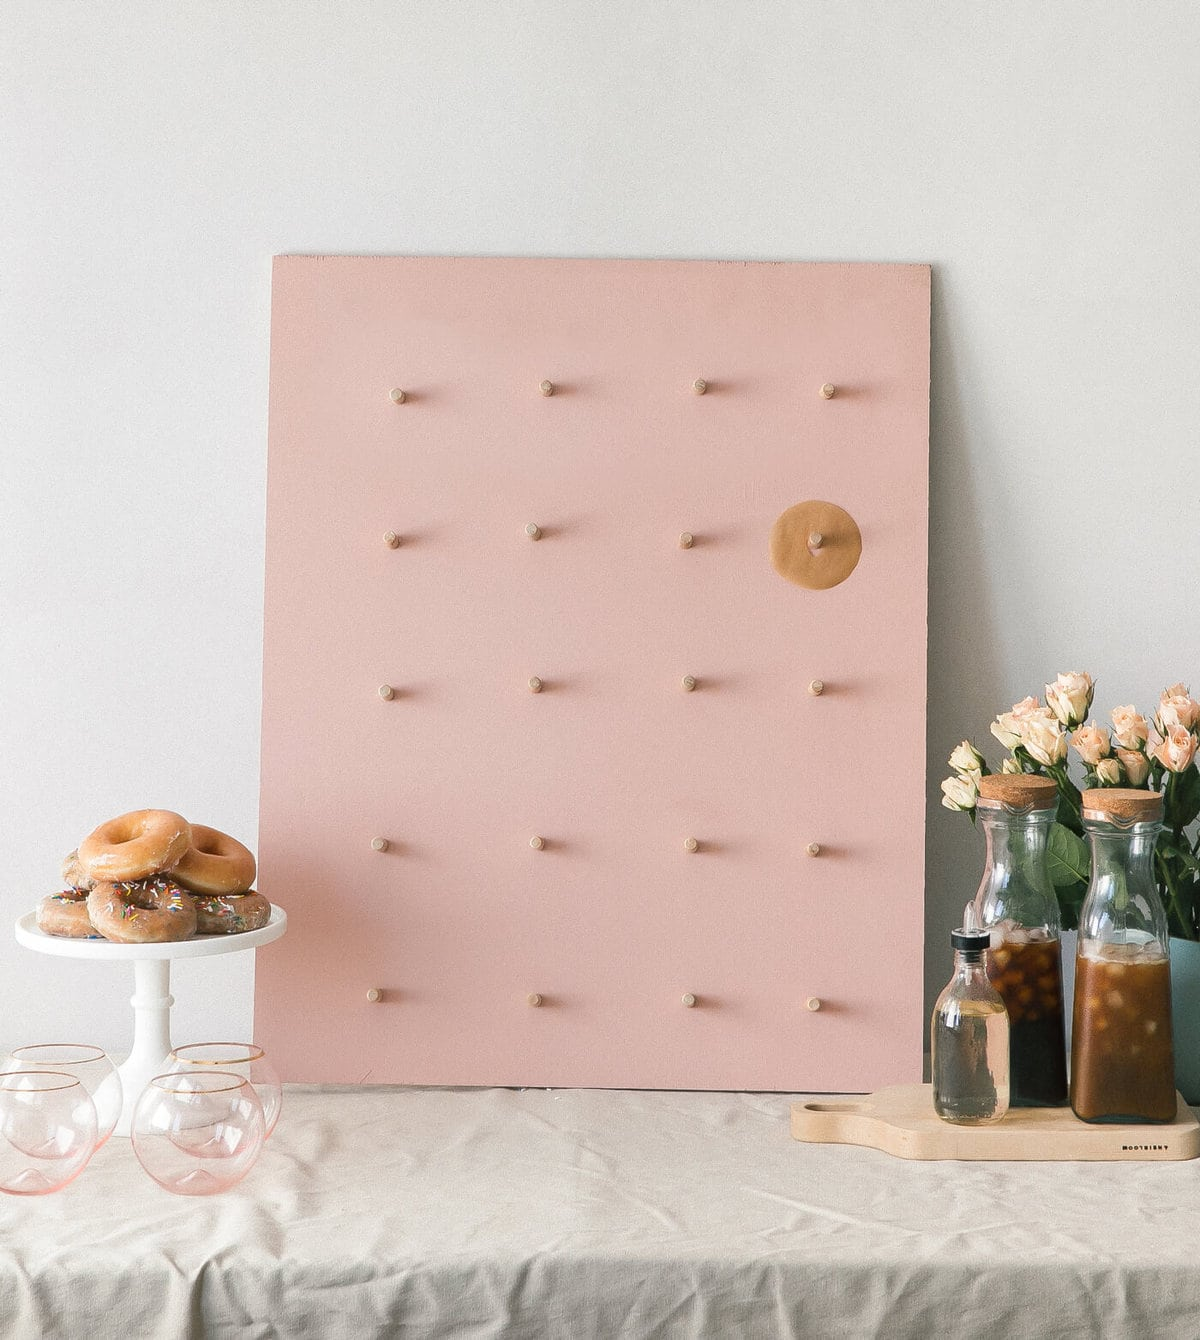 Steps To Create A Cosy Kitchen: How To Make A Doughnut Wall